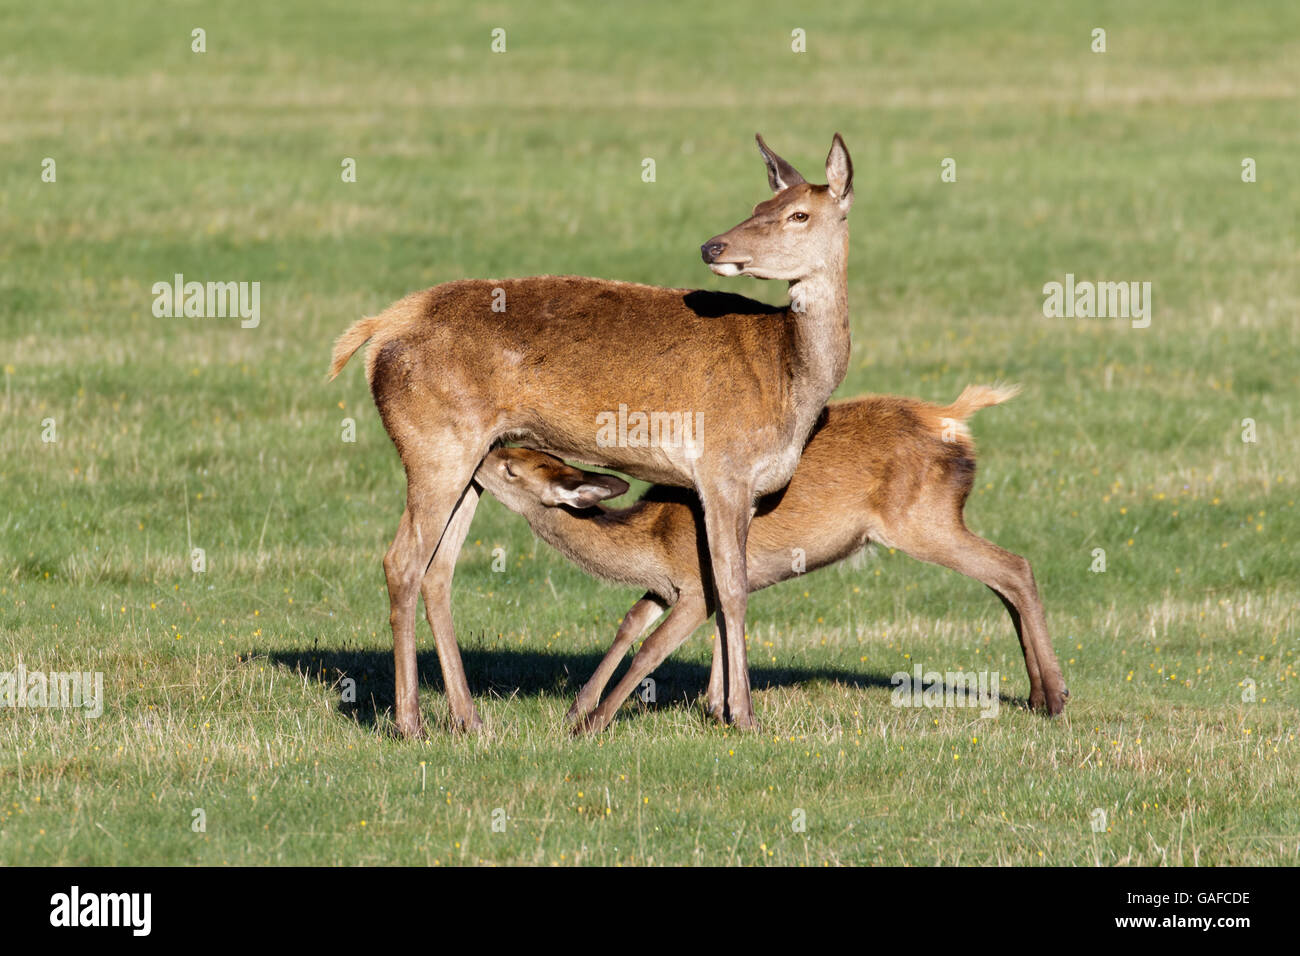 Red Deer young baby calf (Cervus elaphus) suckling feeding from female hind mother mum - Stock Image